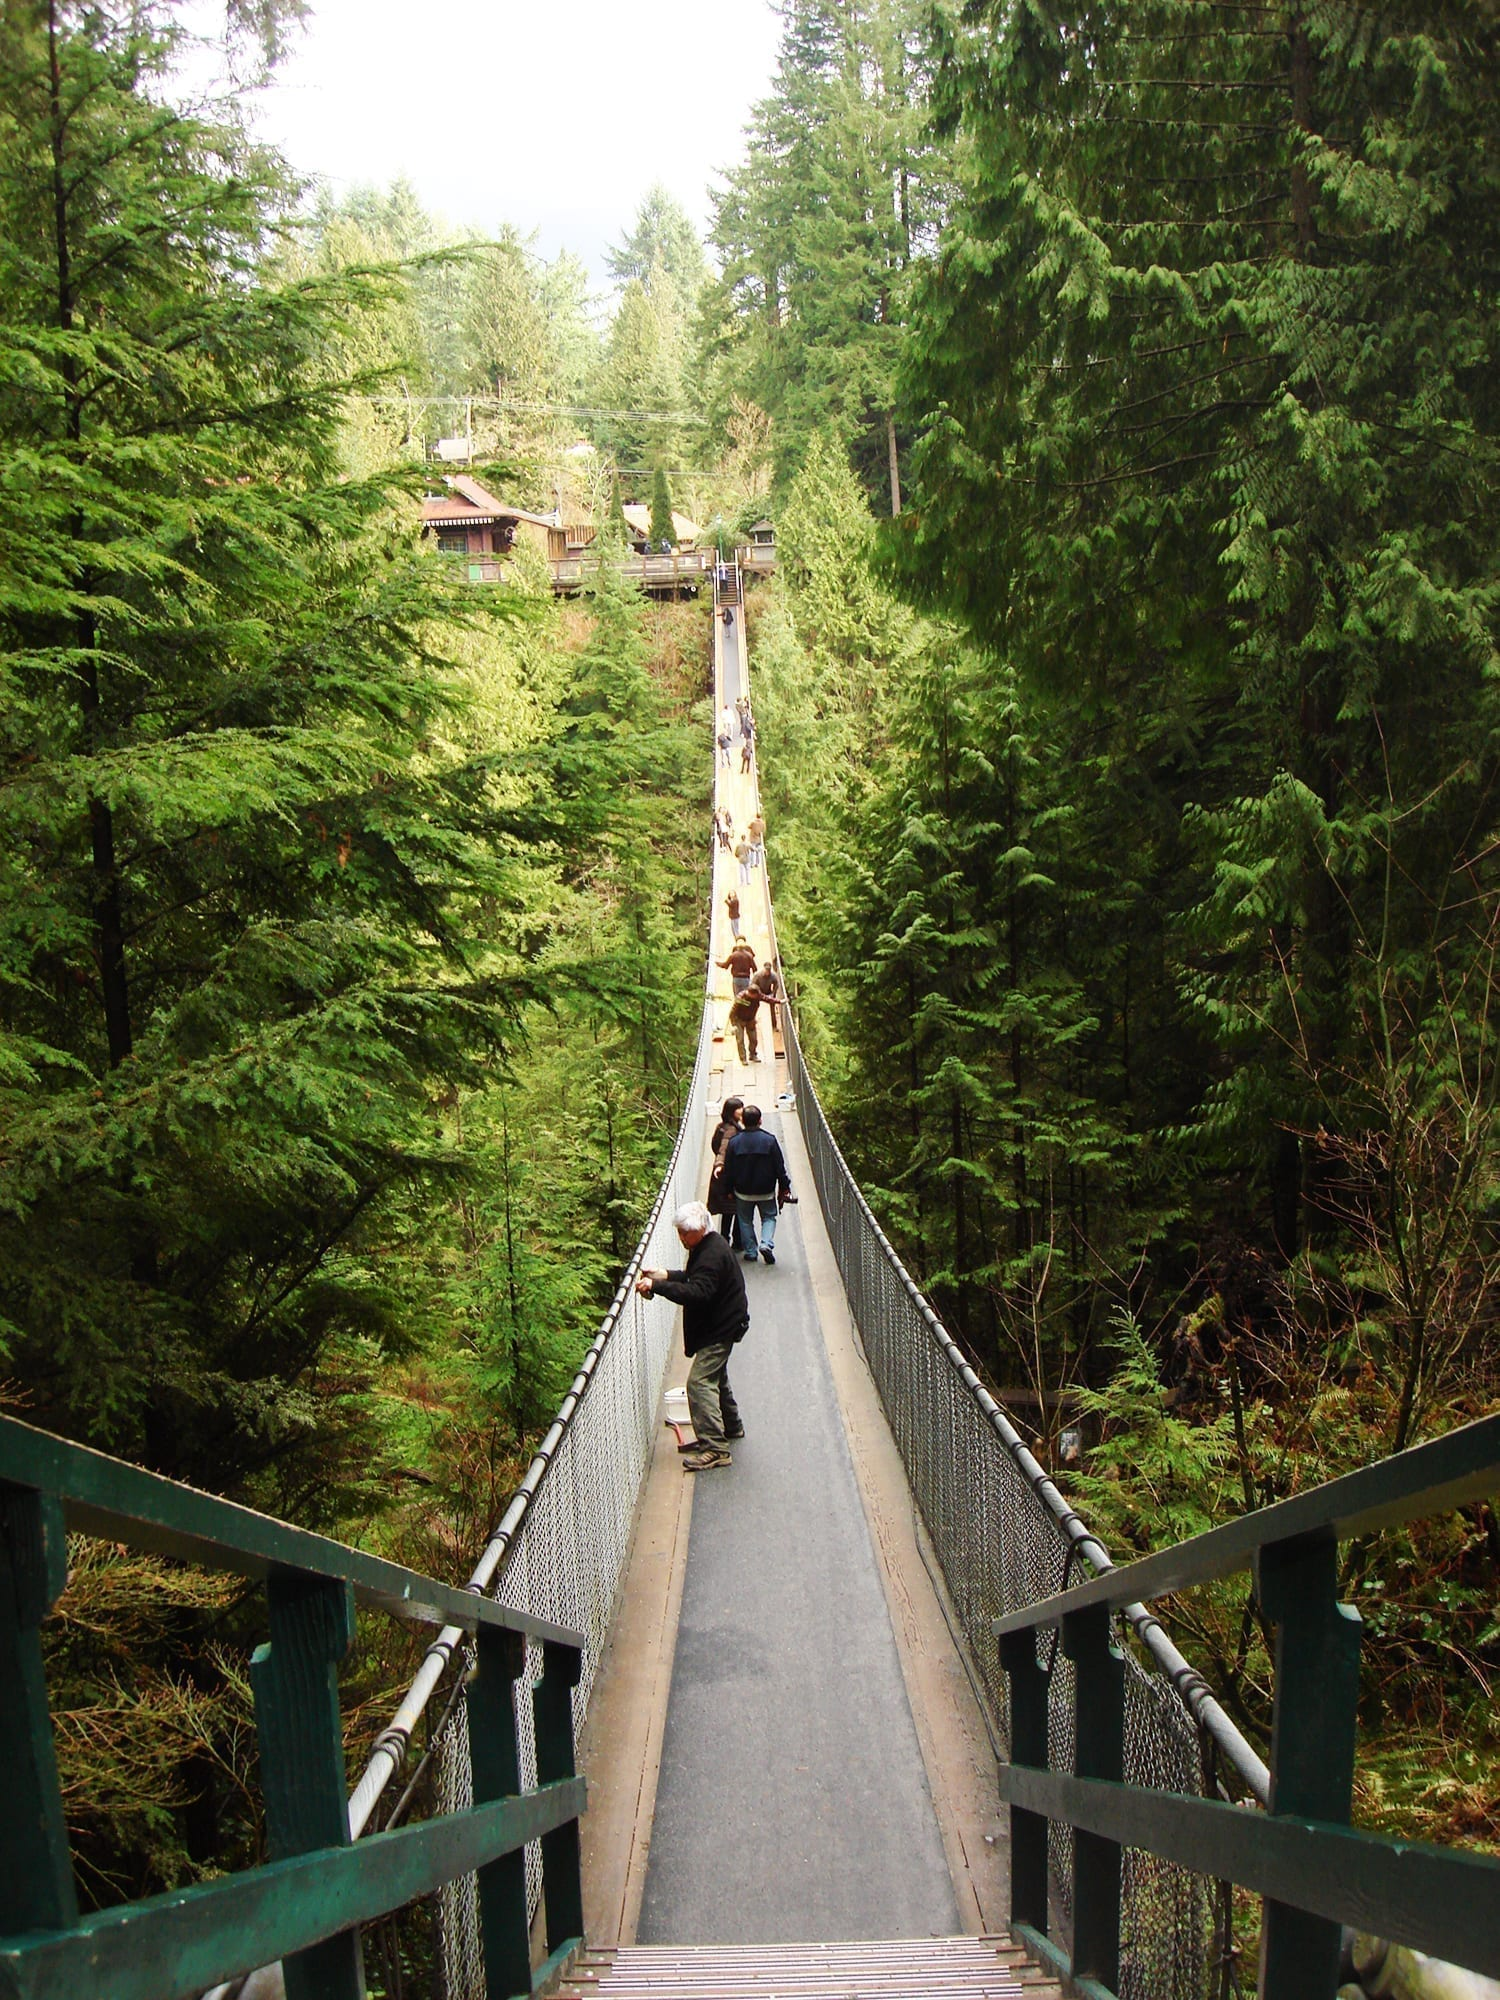 Capilano Suspension Bridge Shuttle